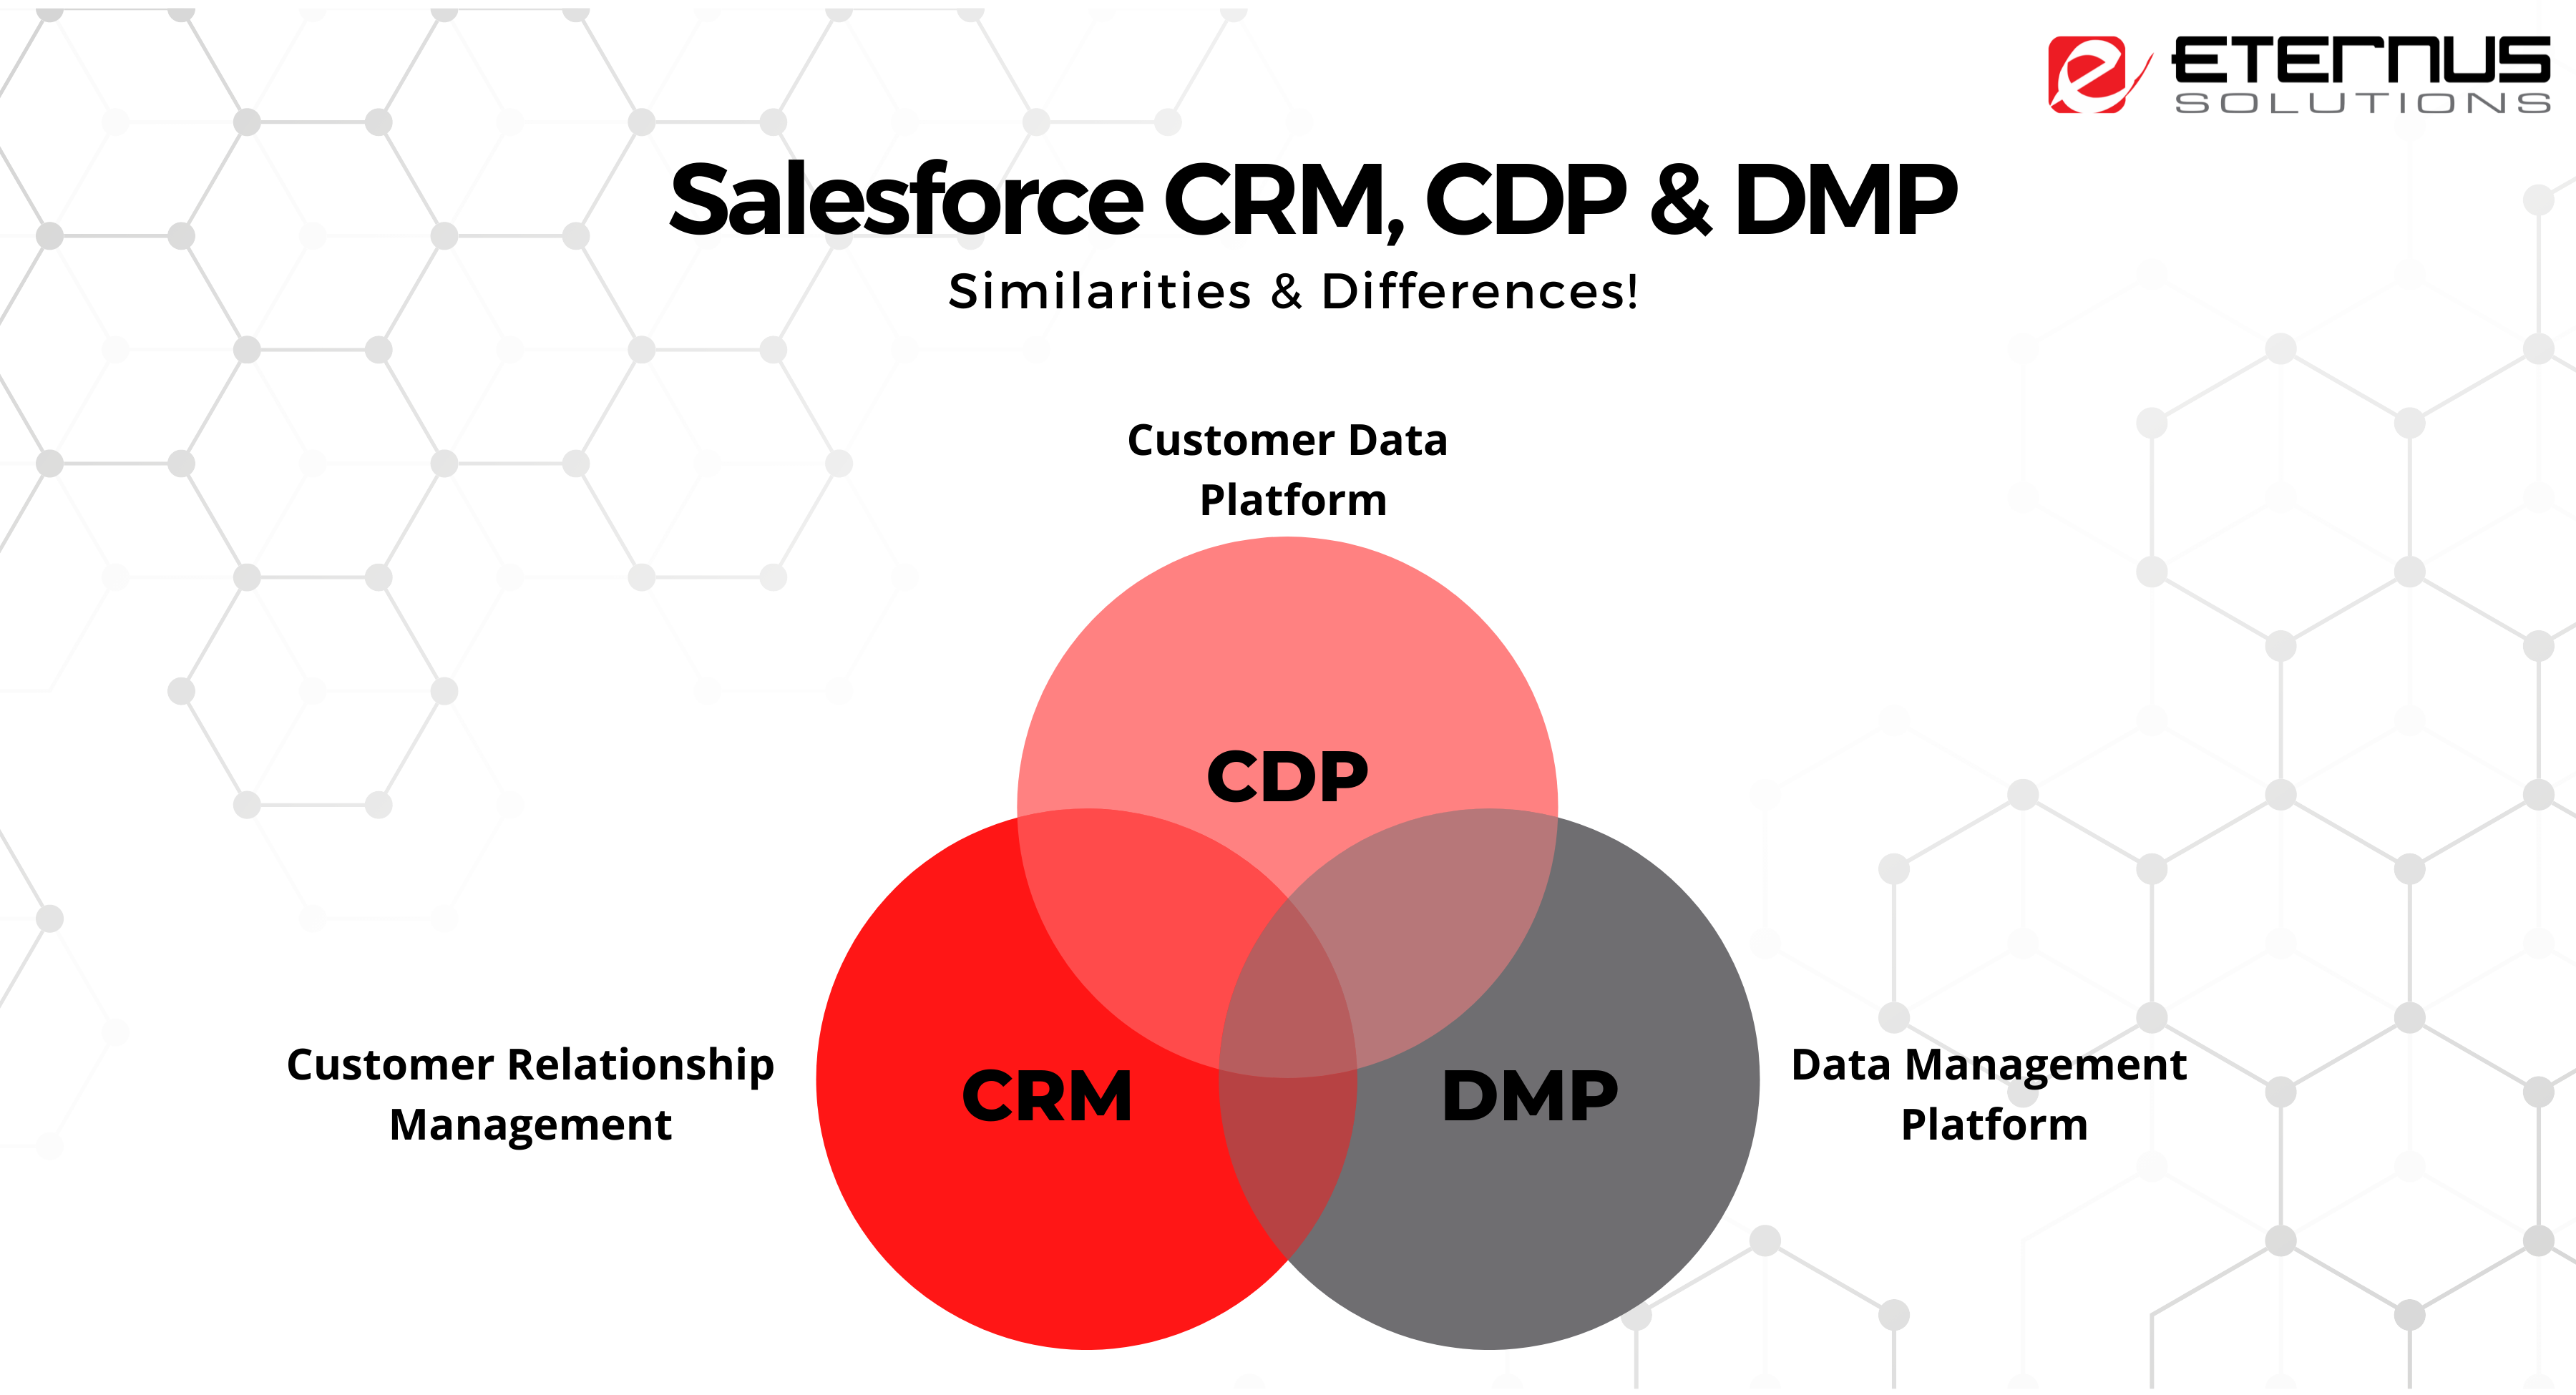 Salesforce CRMs, CDPs & DMPs come into play!